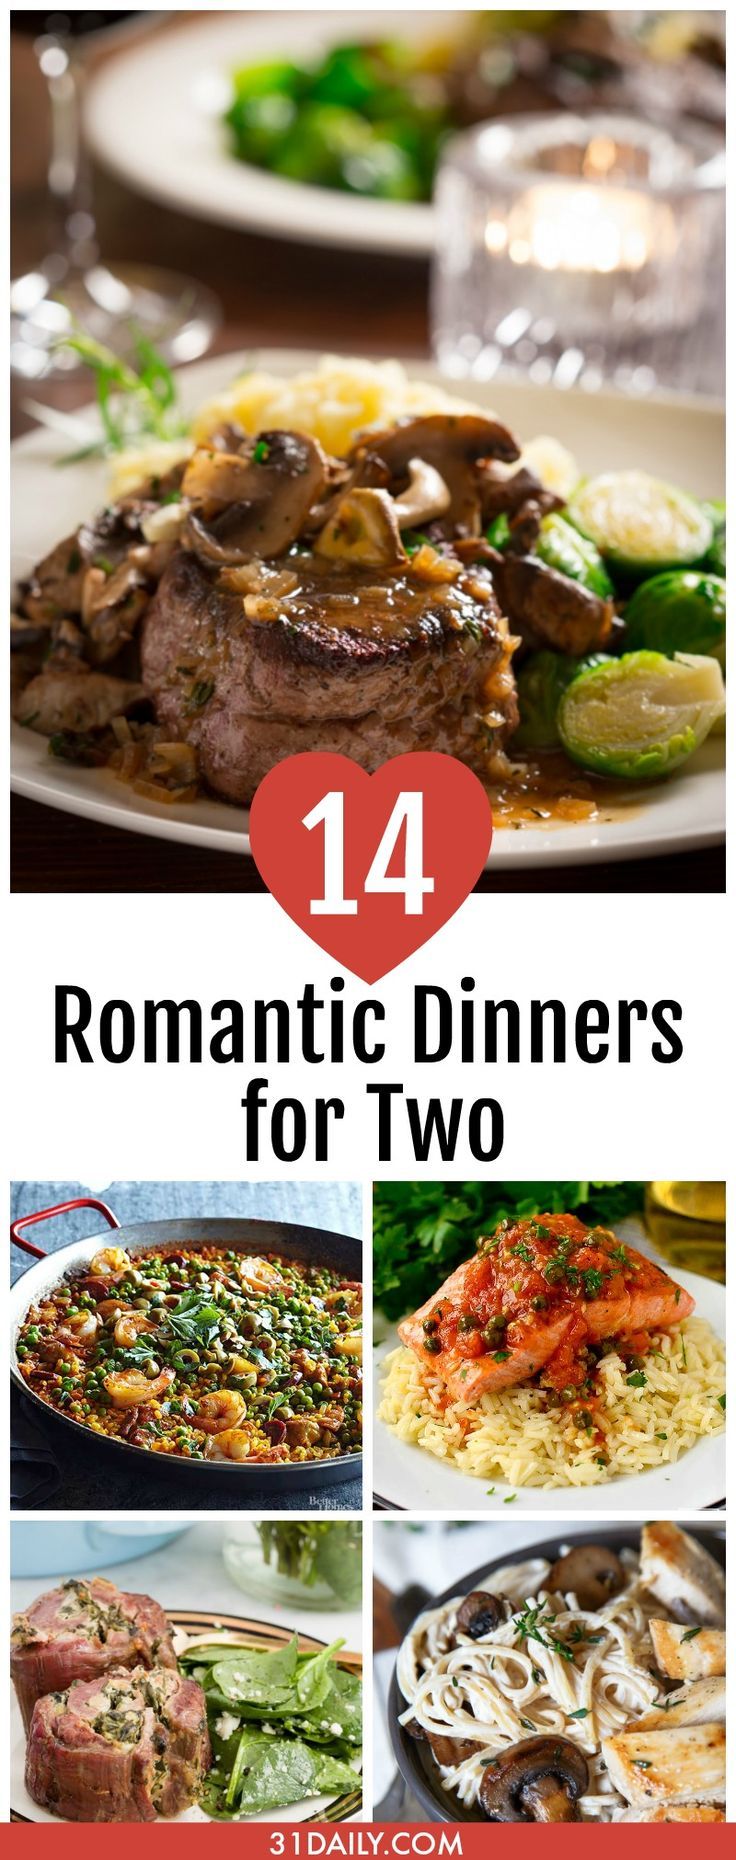 14 Romantic Dinners for Two | 31Daily.com #valentinesday #dinnersfortwo #romanticdinners